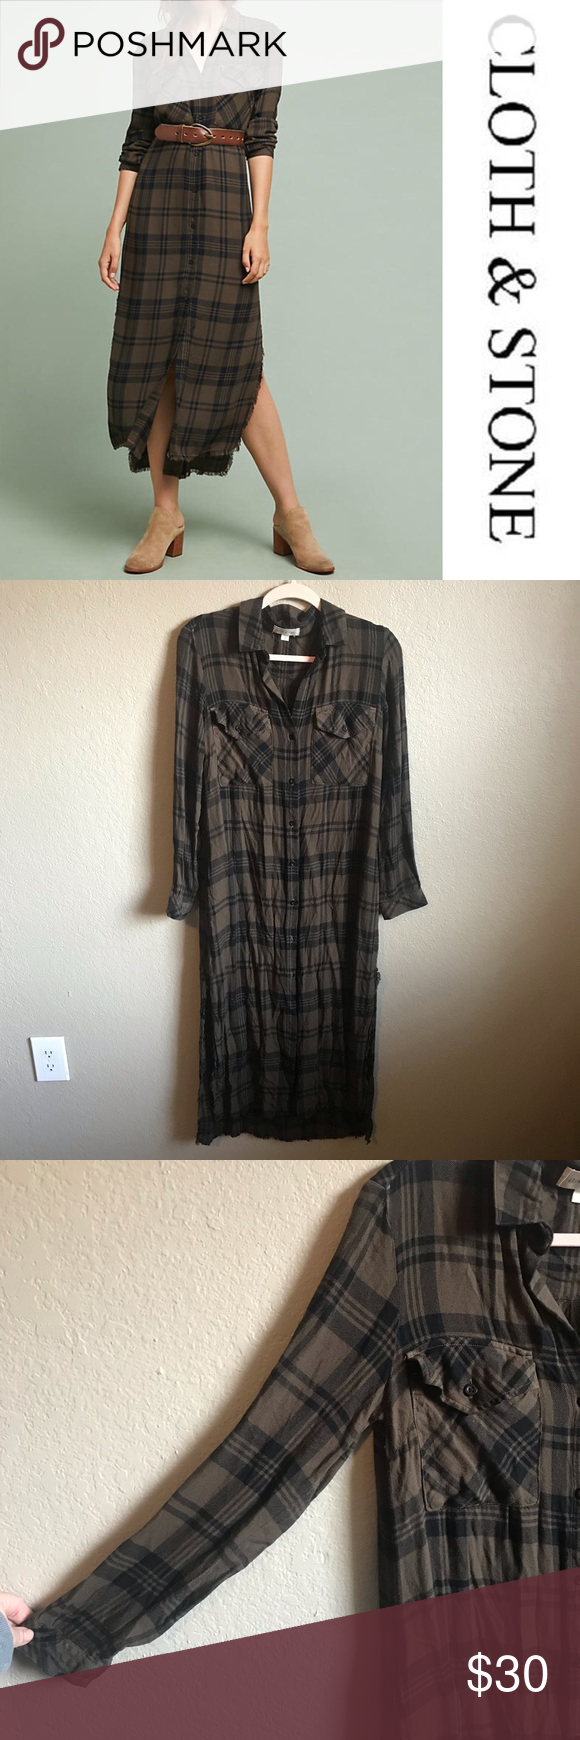 41++ Cloth and stone plaid dress trends